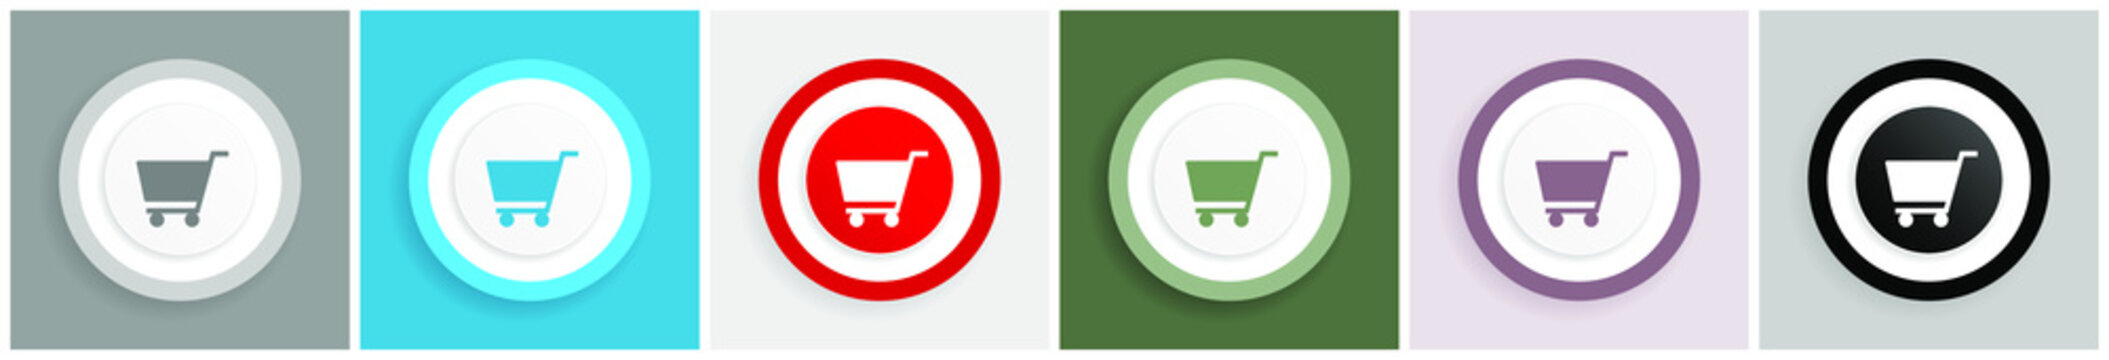 Cart icon set, colorful flat design vector illustrations in 6 options for web design and mobile applications